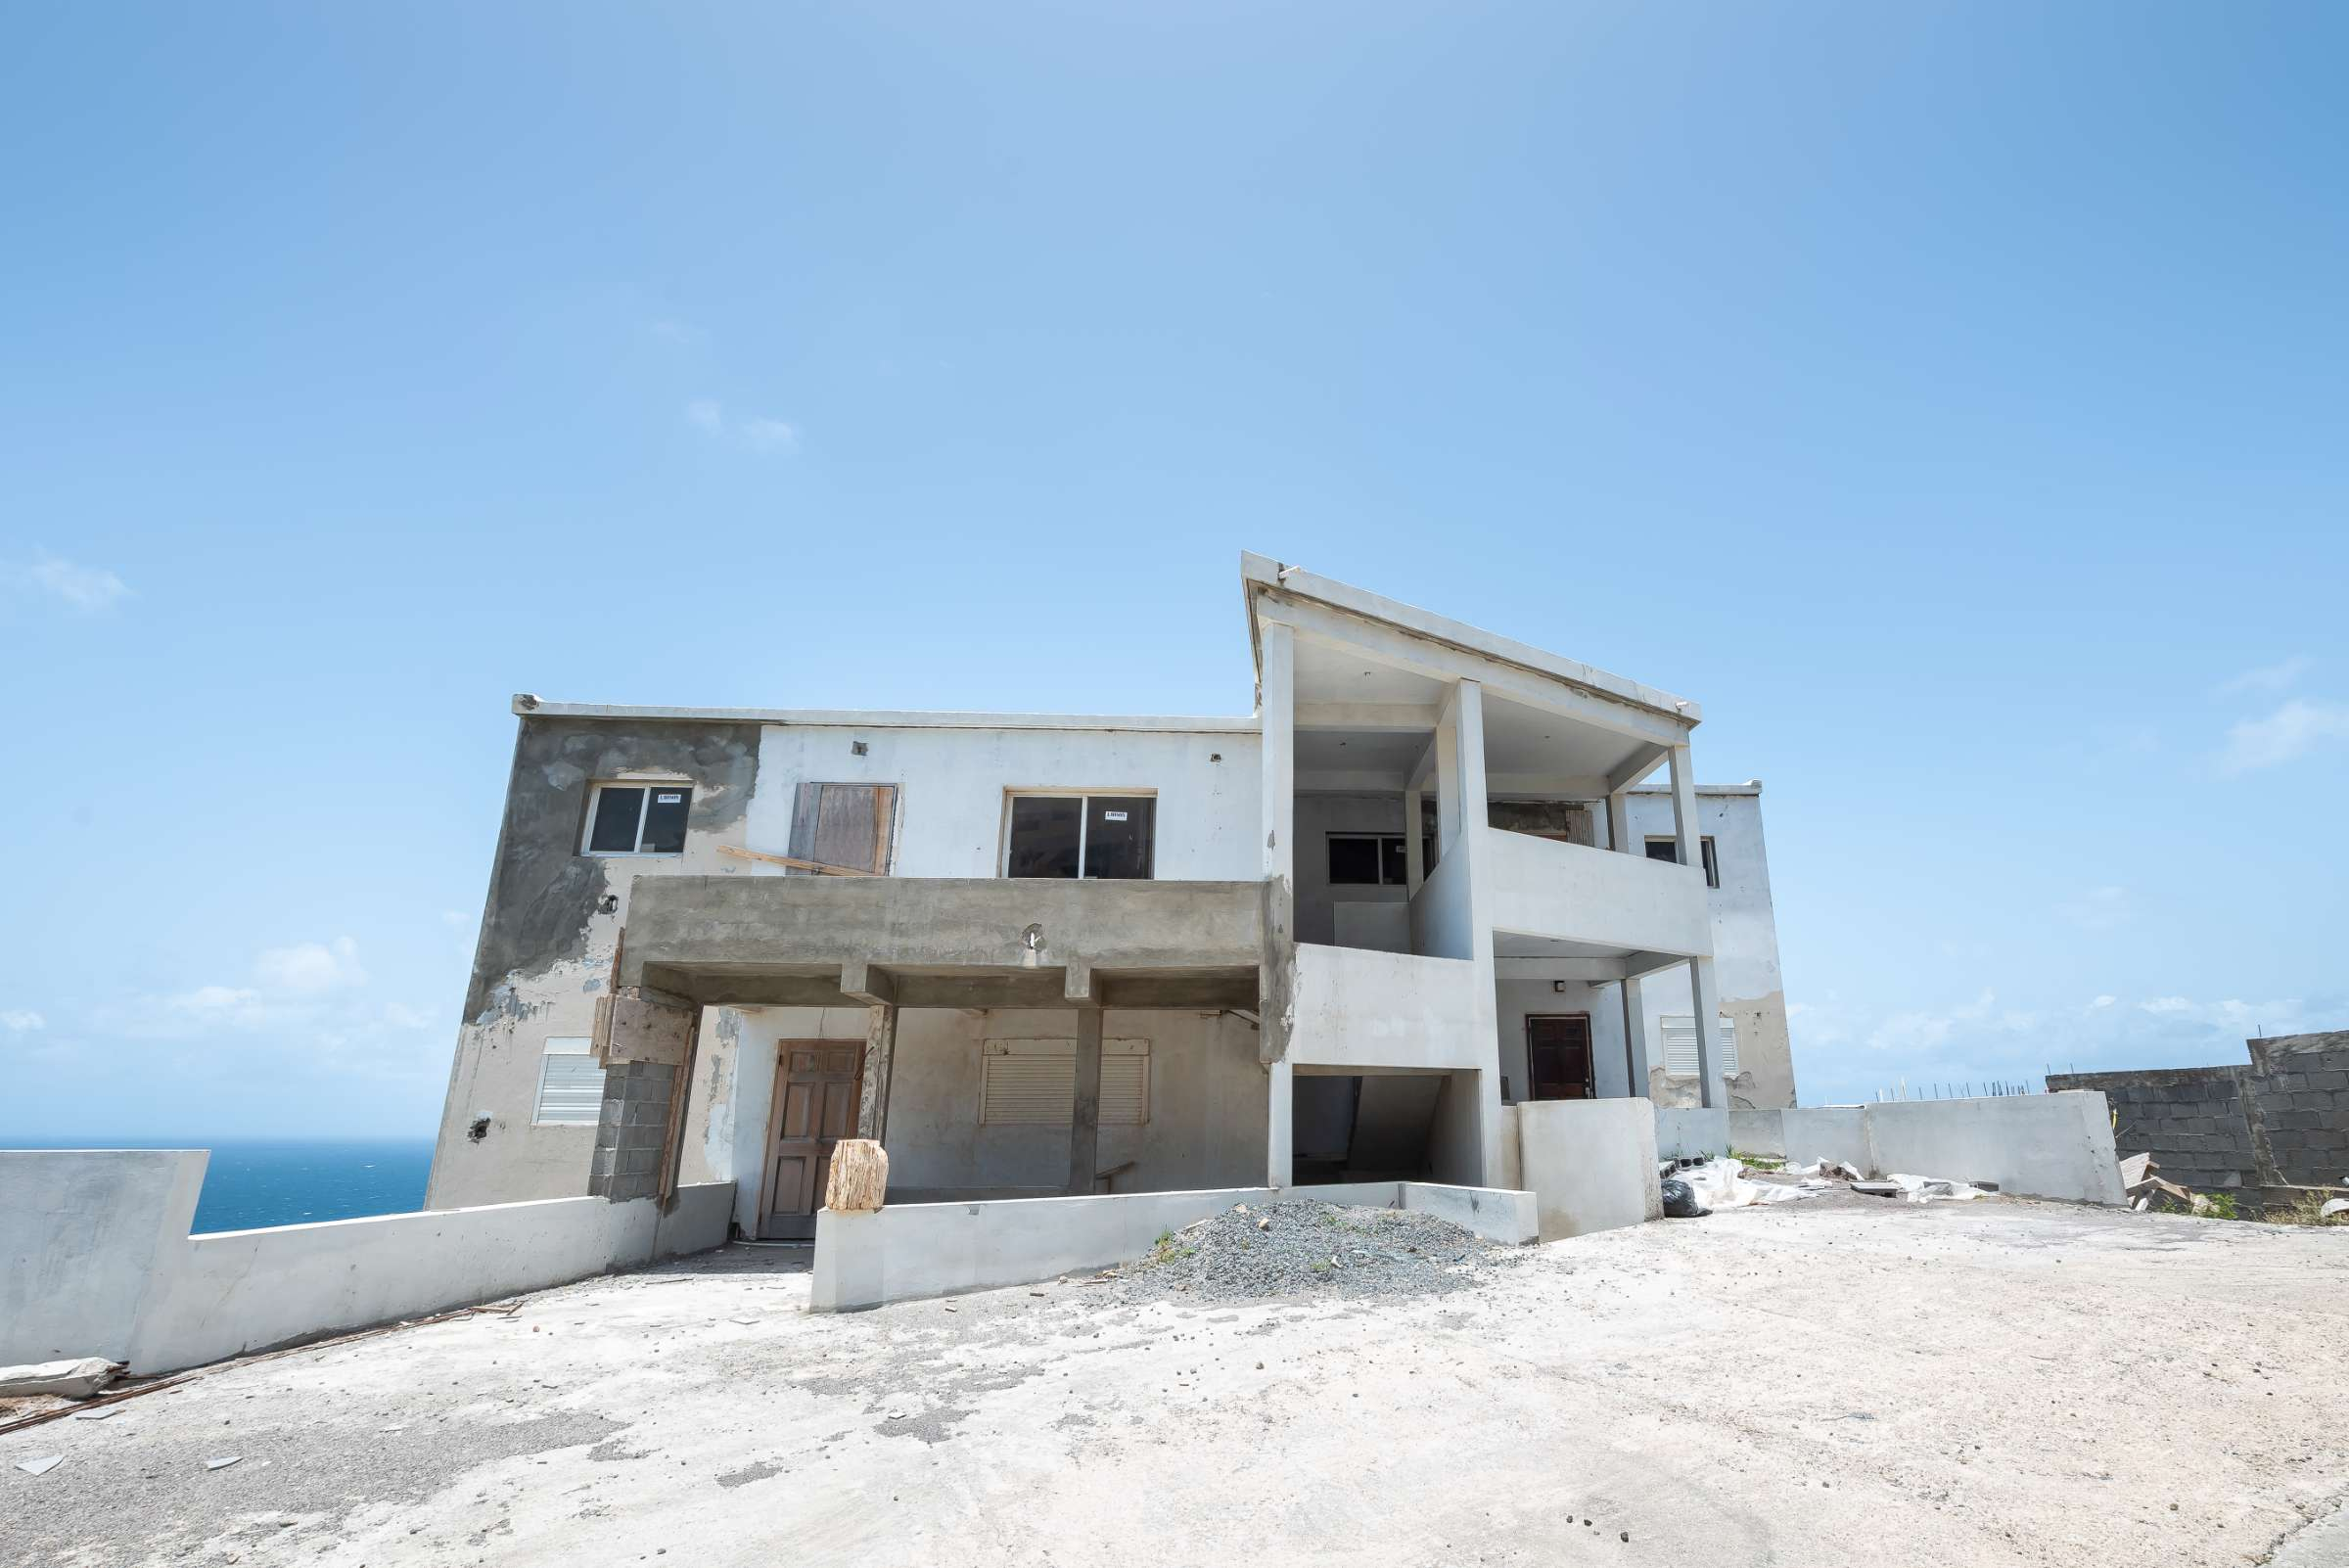 Incredible Fixer-Upper Point Blanche Apartment Building For Sale